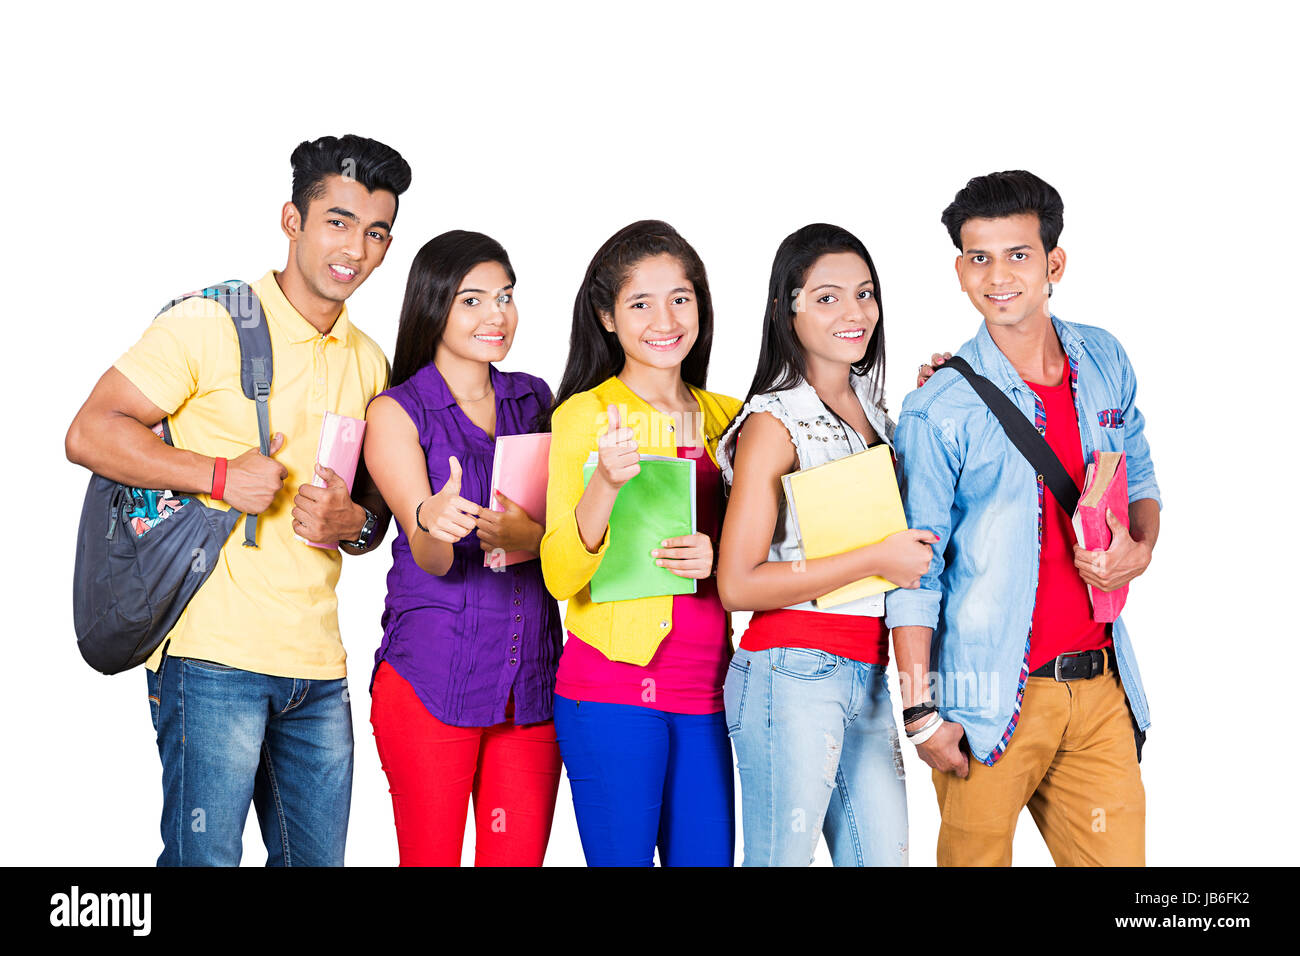 5 People Indian College Boys and Girls Standing Together